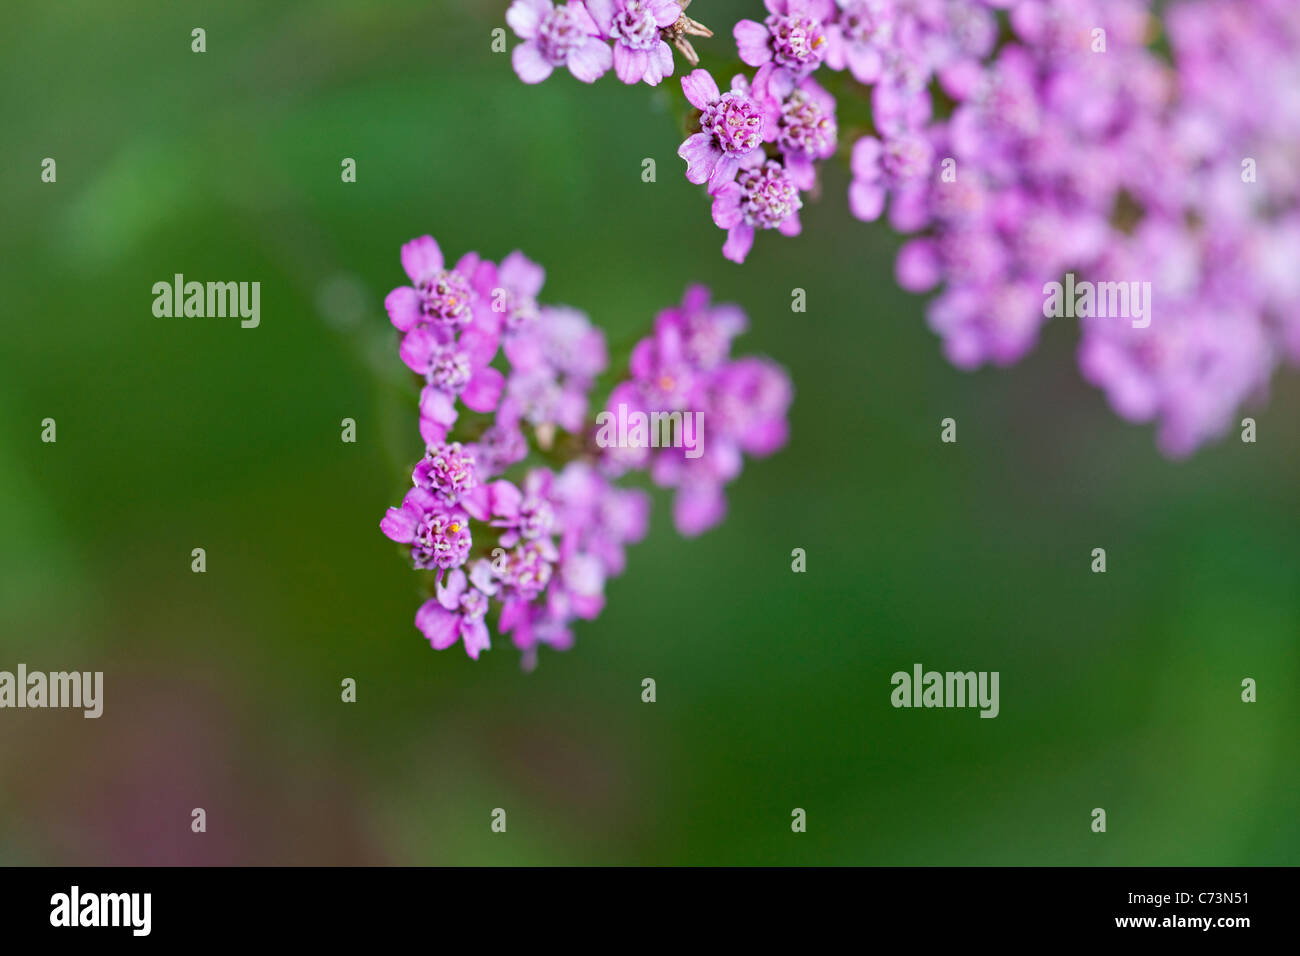 Close-up, of pink flowers in bloom, partly blurred, Bad Essen, Lower Saxony, Germany - Stock Image